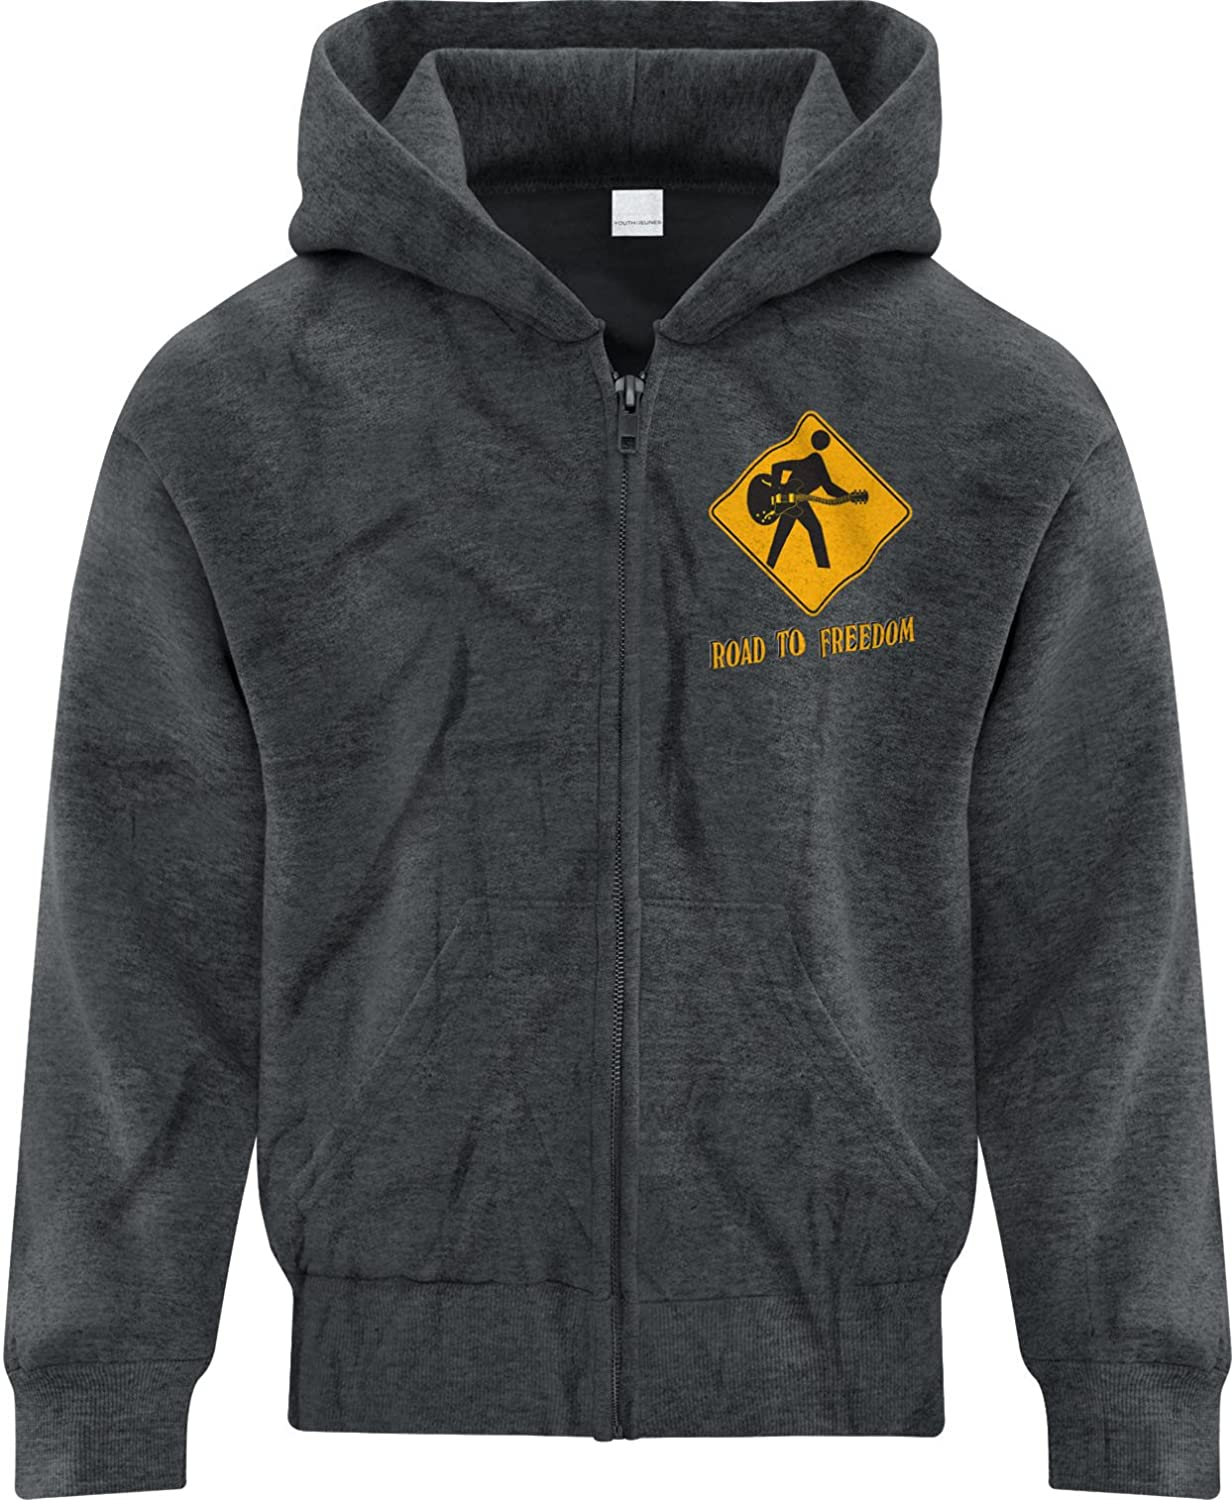 BSW Youth Boys Road to Freedom Guitar Electric Music Zip Hoodie